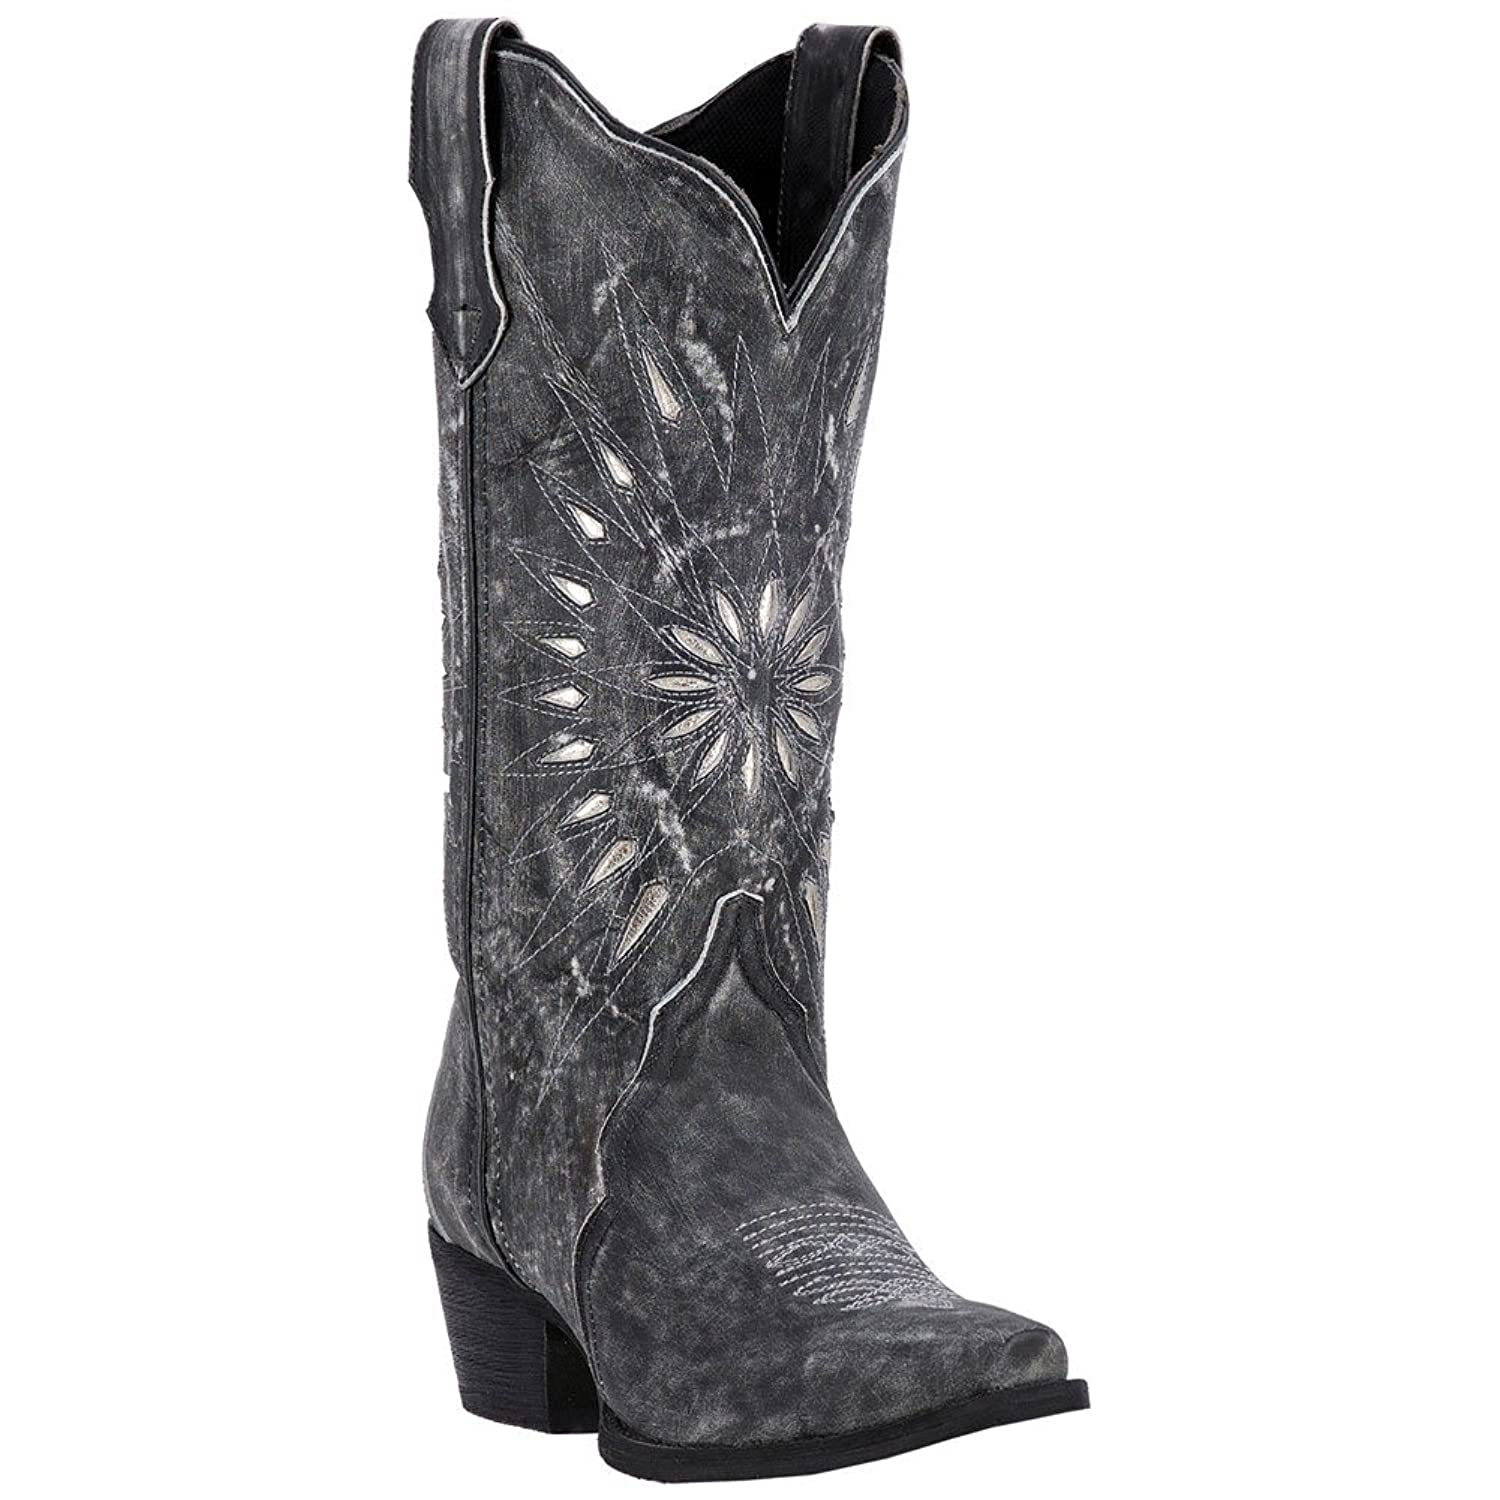 estrella promo for dancing boots corbeto cowboy comforter eng womens cabra flora most music best libano line comfortable country s hd